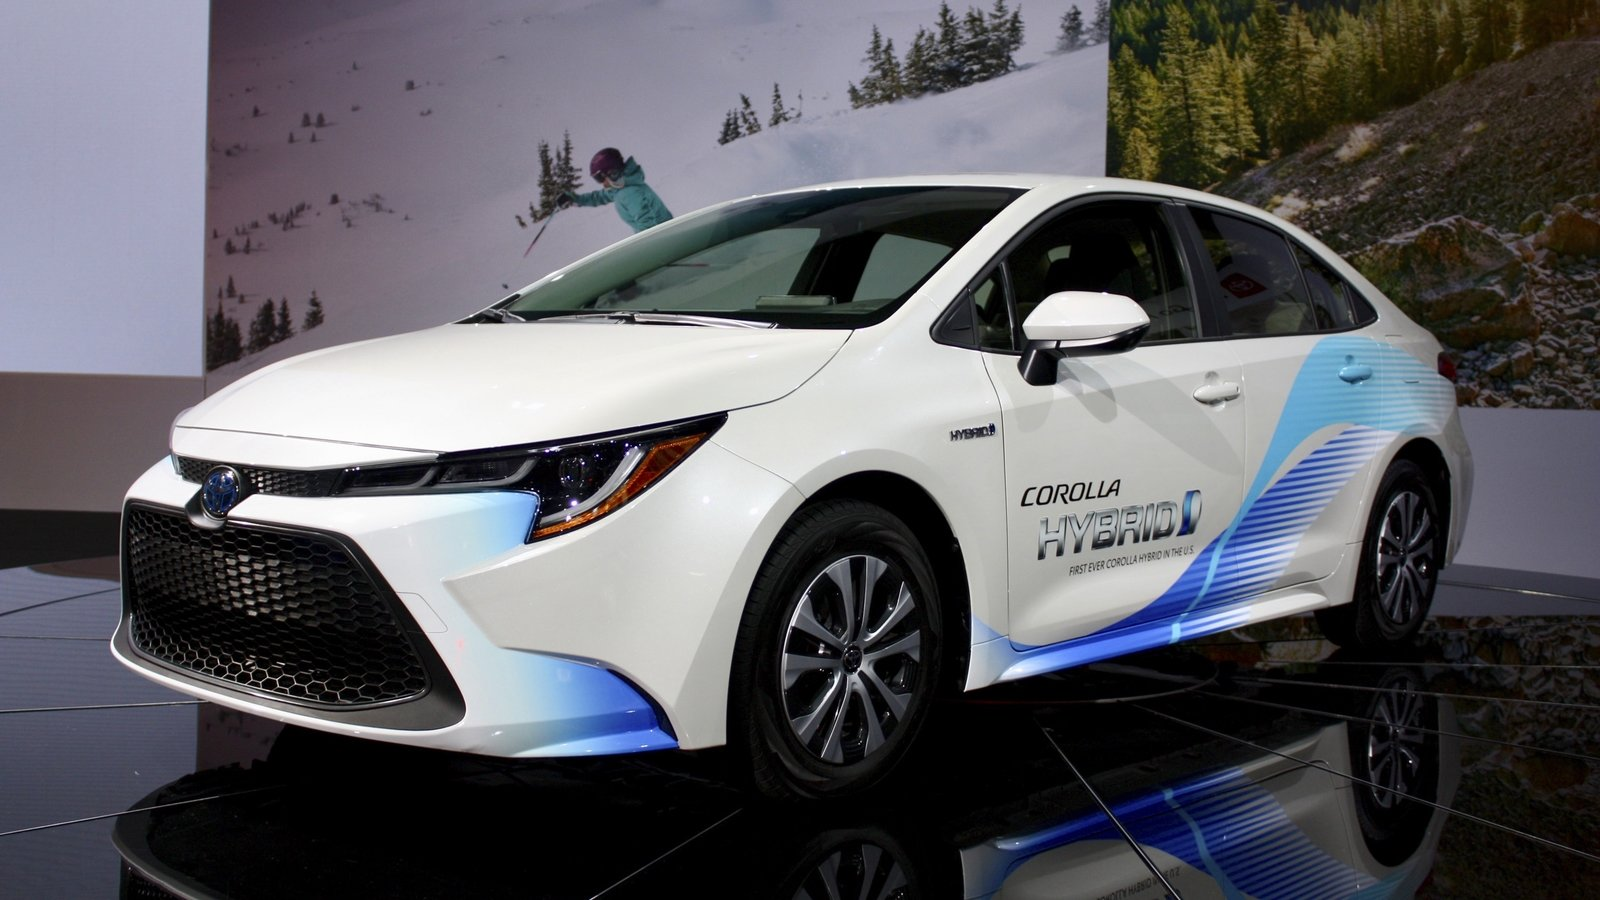 Toyota Corolla Mpg >> The 2020 Toyota Corolla Hybrid Gives You Prius Fuel Economy Without The Weird Hatchback Design ...